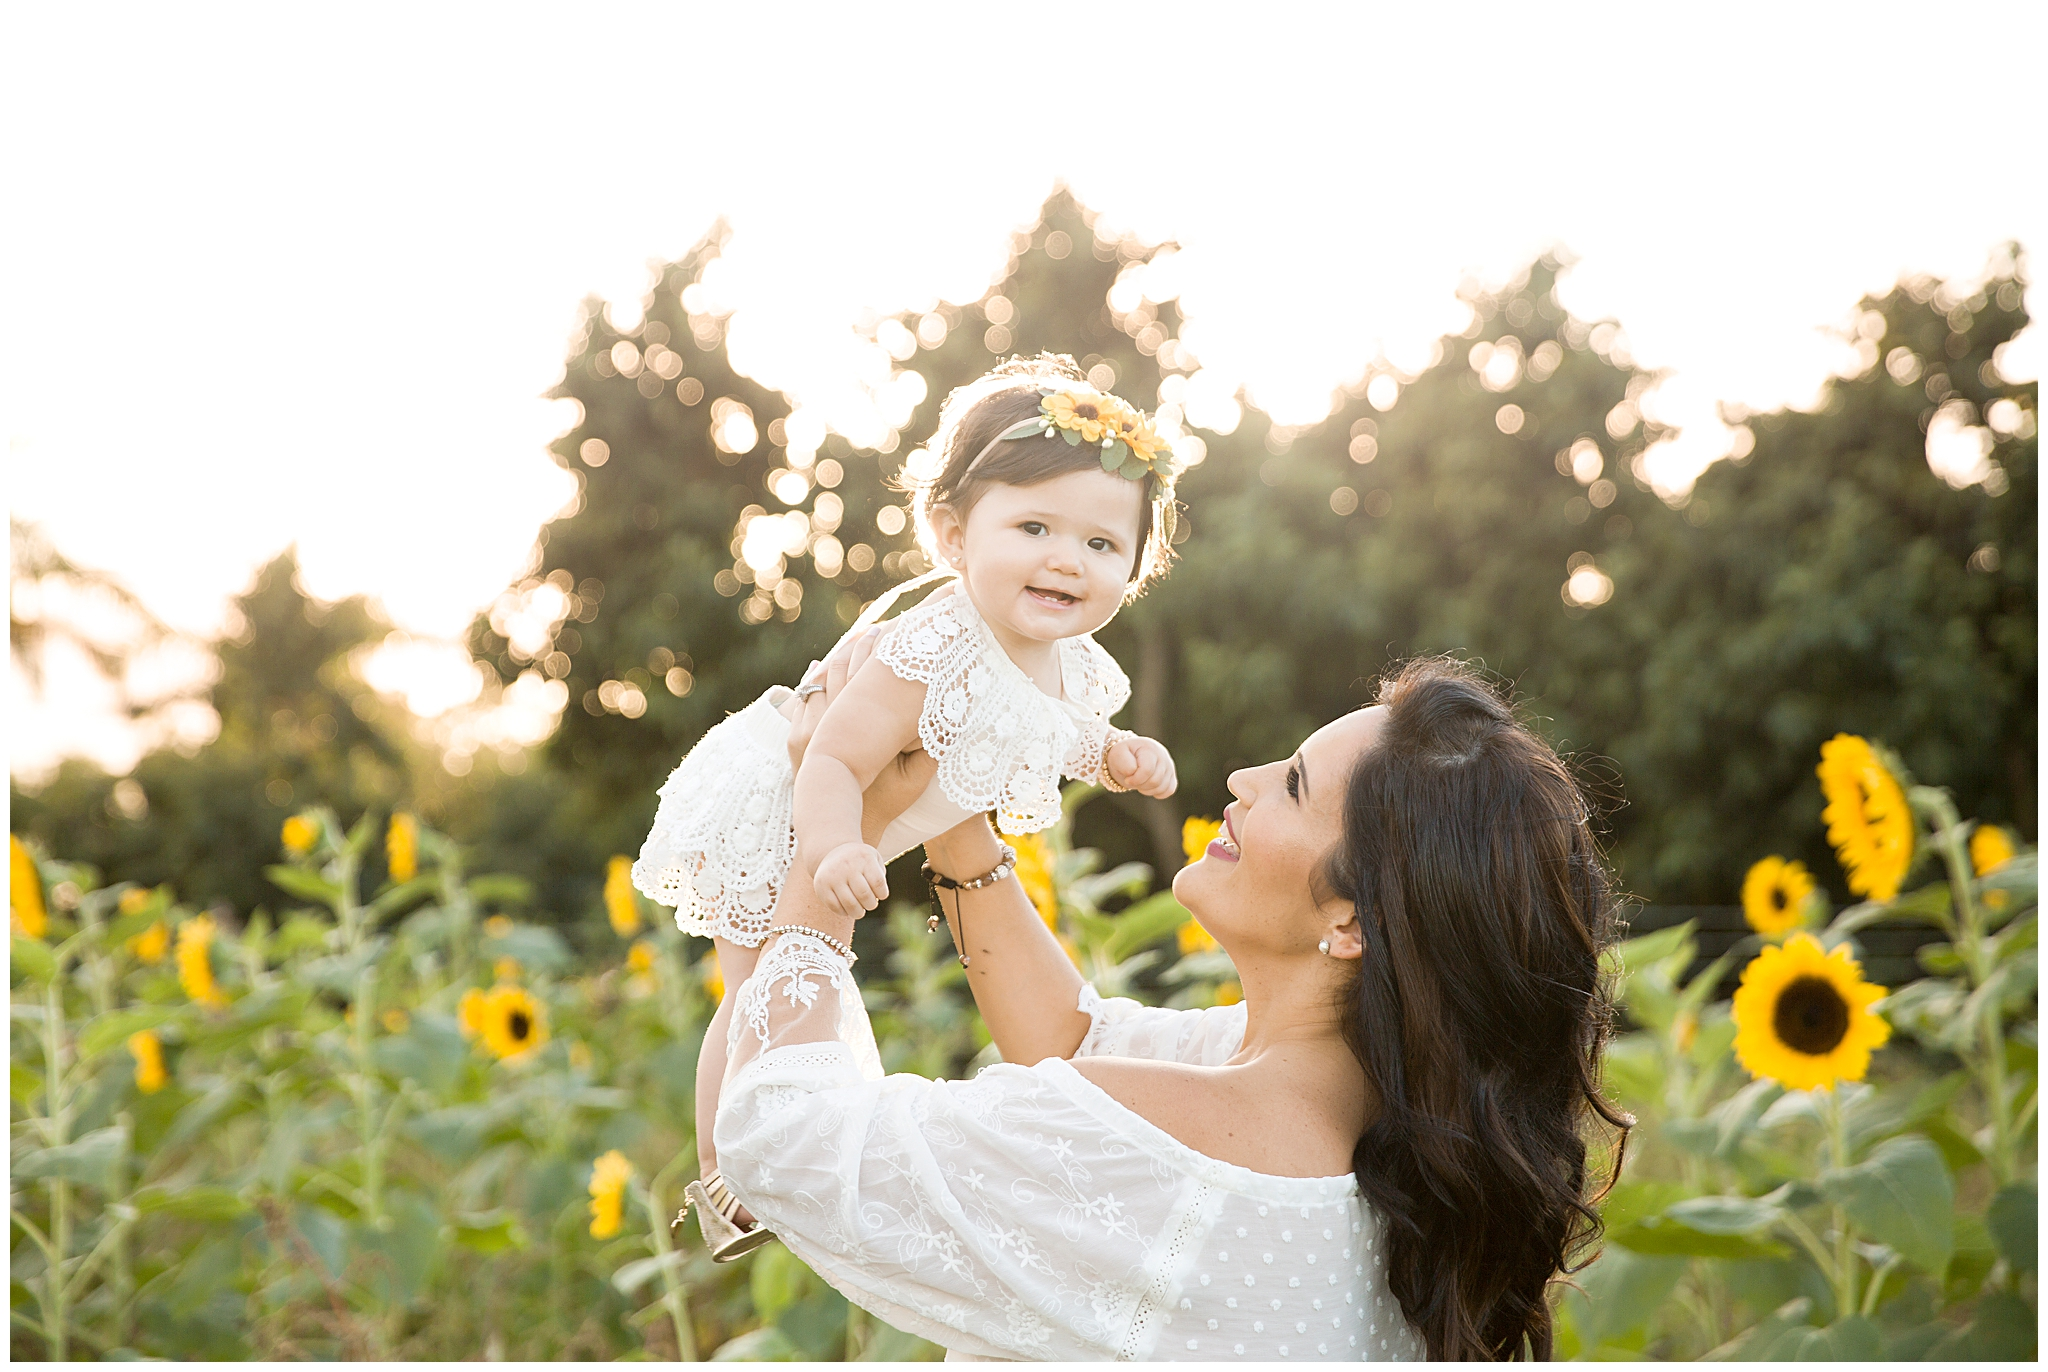 Miami Family Photography | Sunflower field in Homestead FL